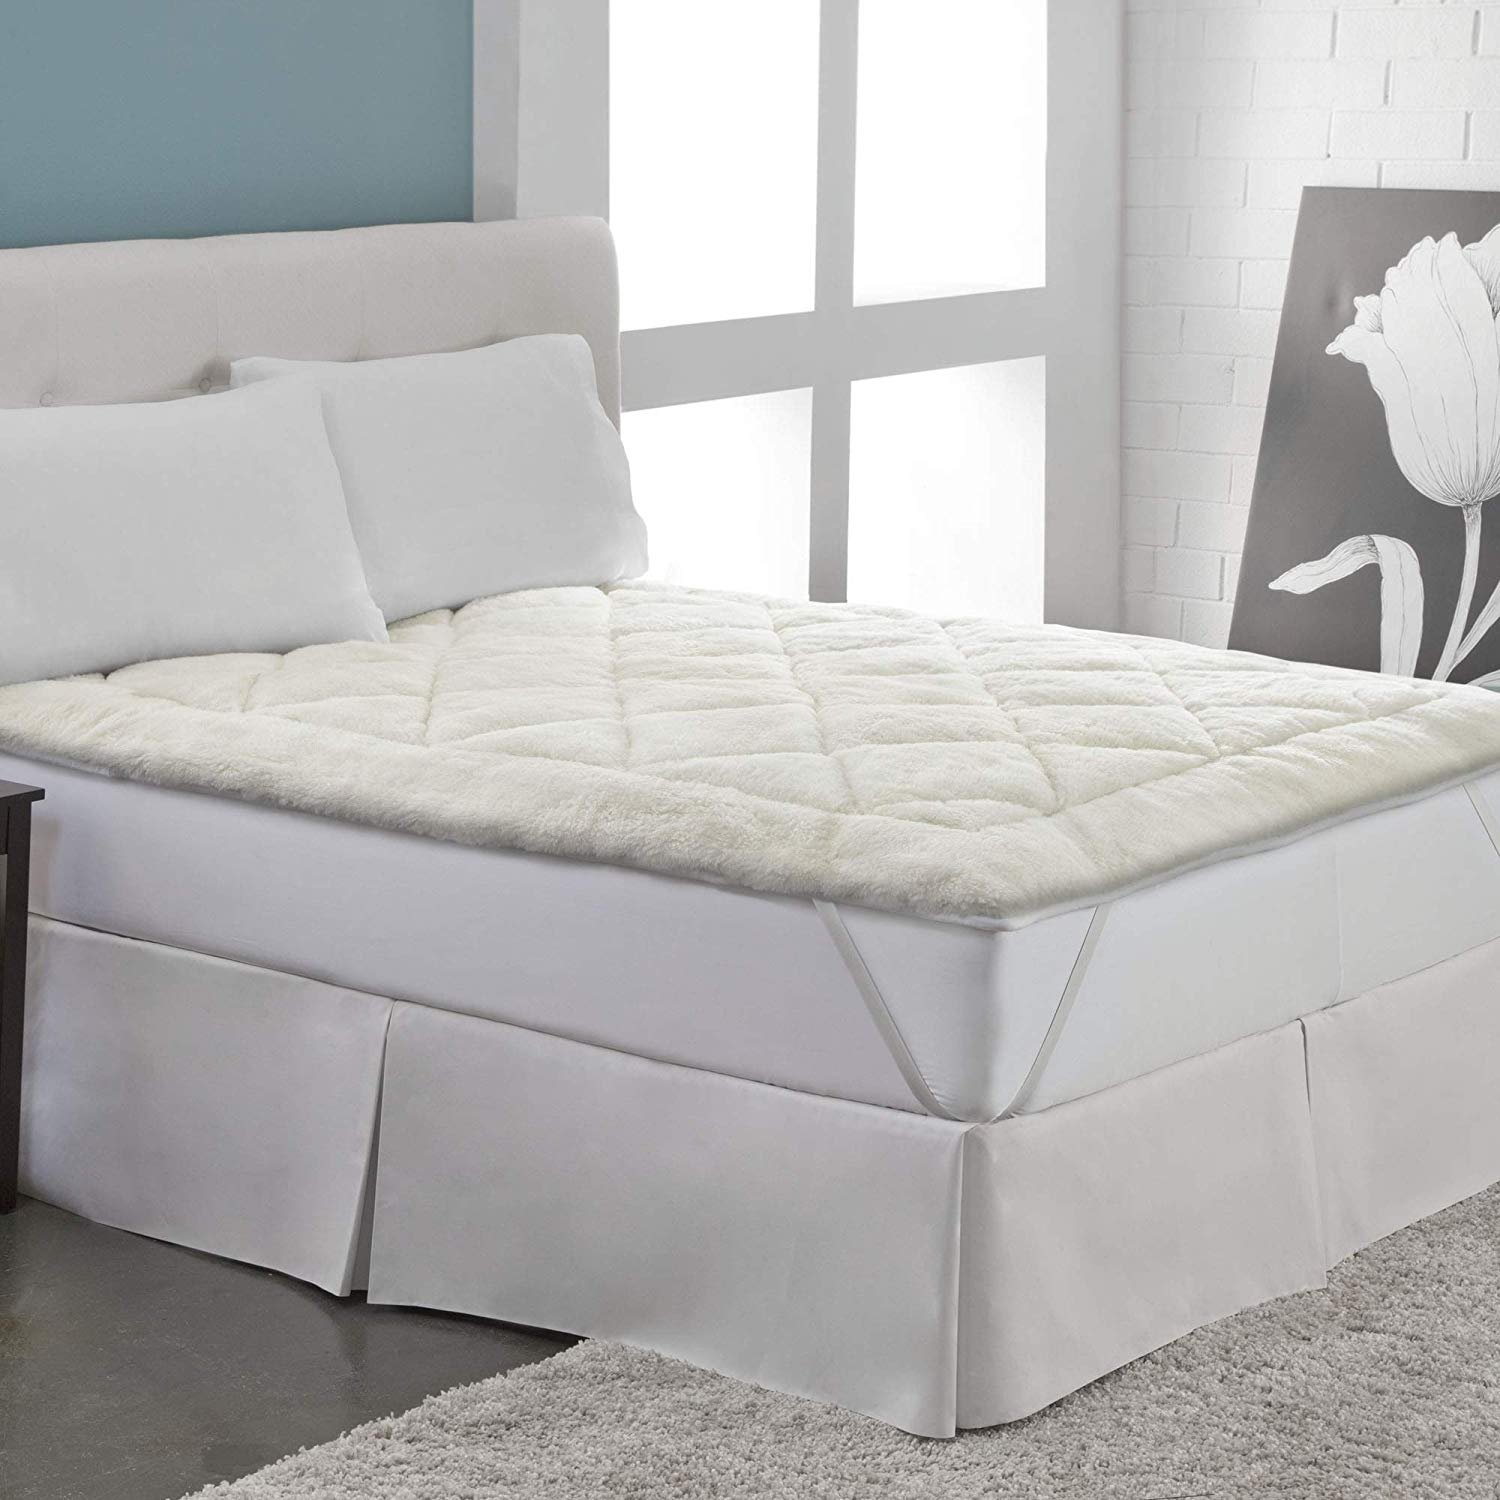 Best Mattress Toppers Australia Wool Mattress Topper The Best Products For 2019 Snoremagazine